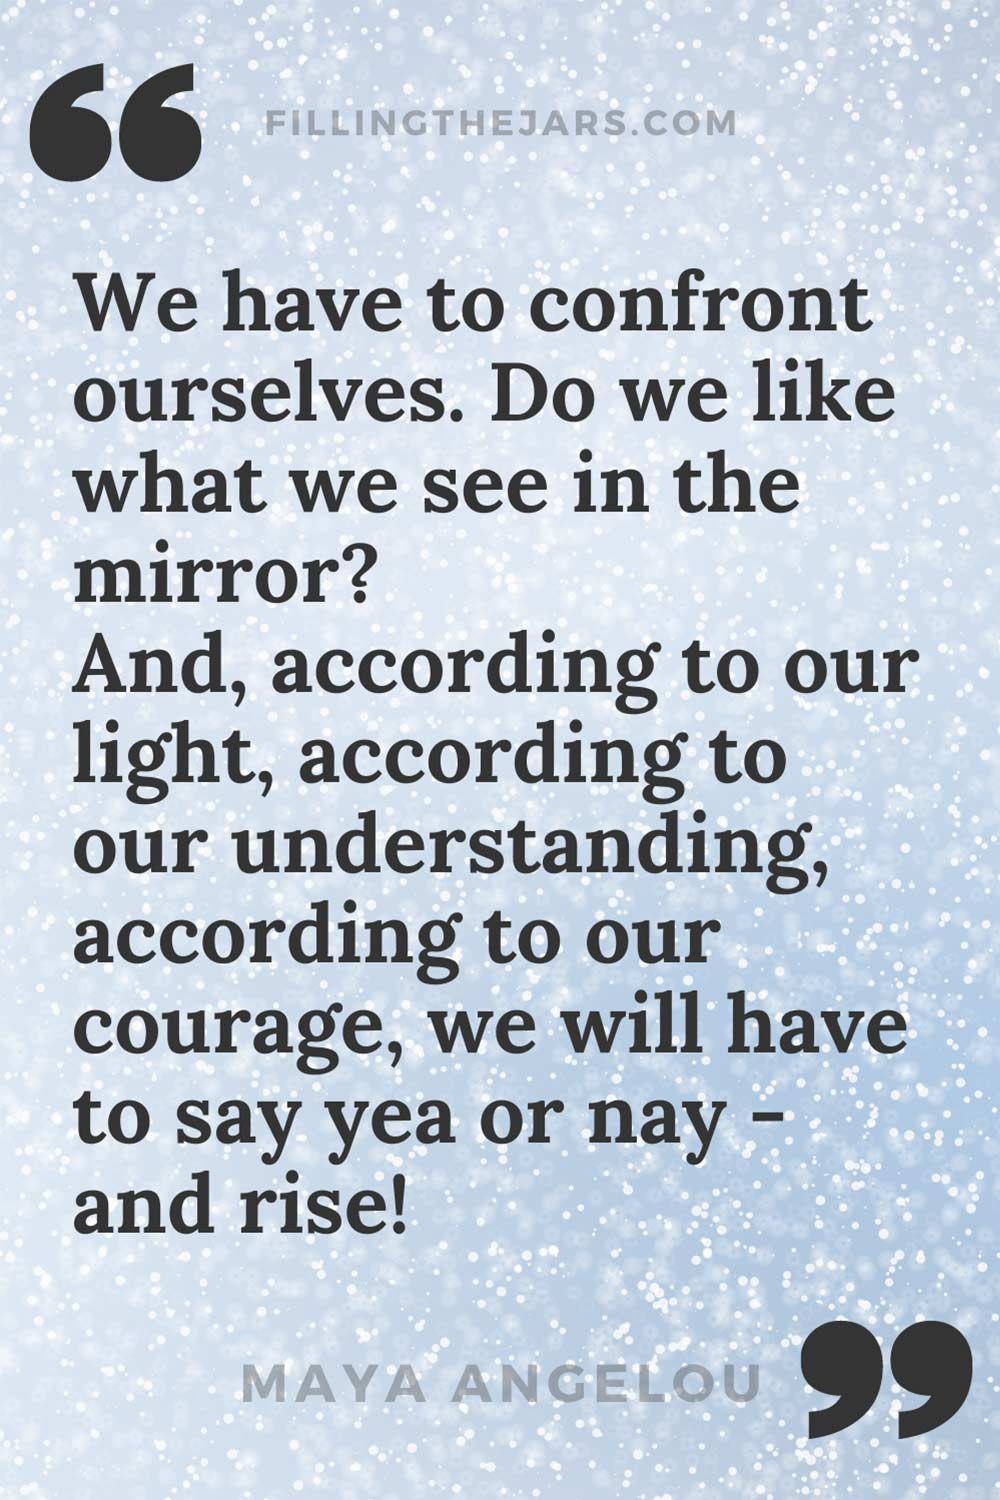 Maya Angelou we have to confront ourselves inspirational quote on snowy blue background.